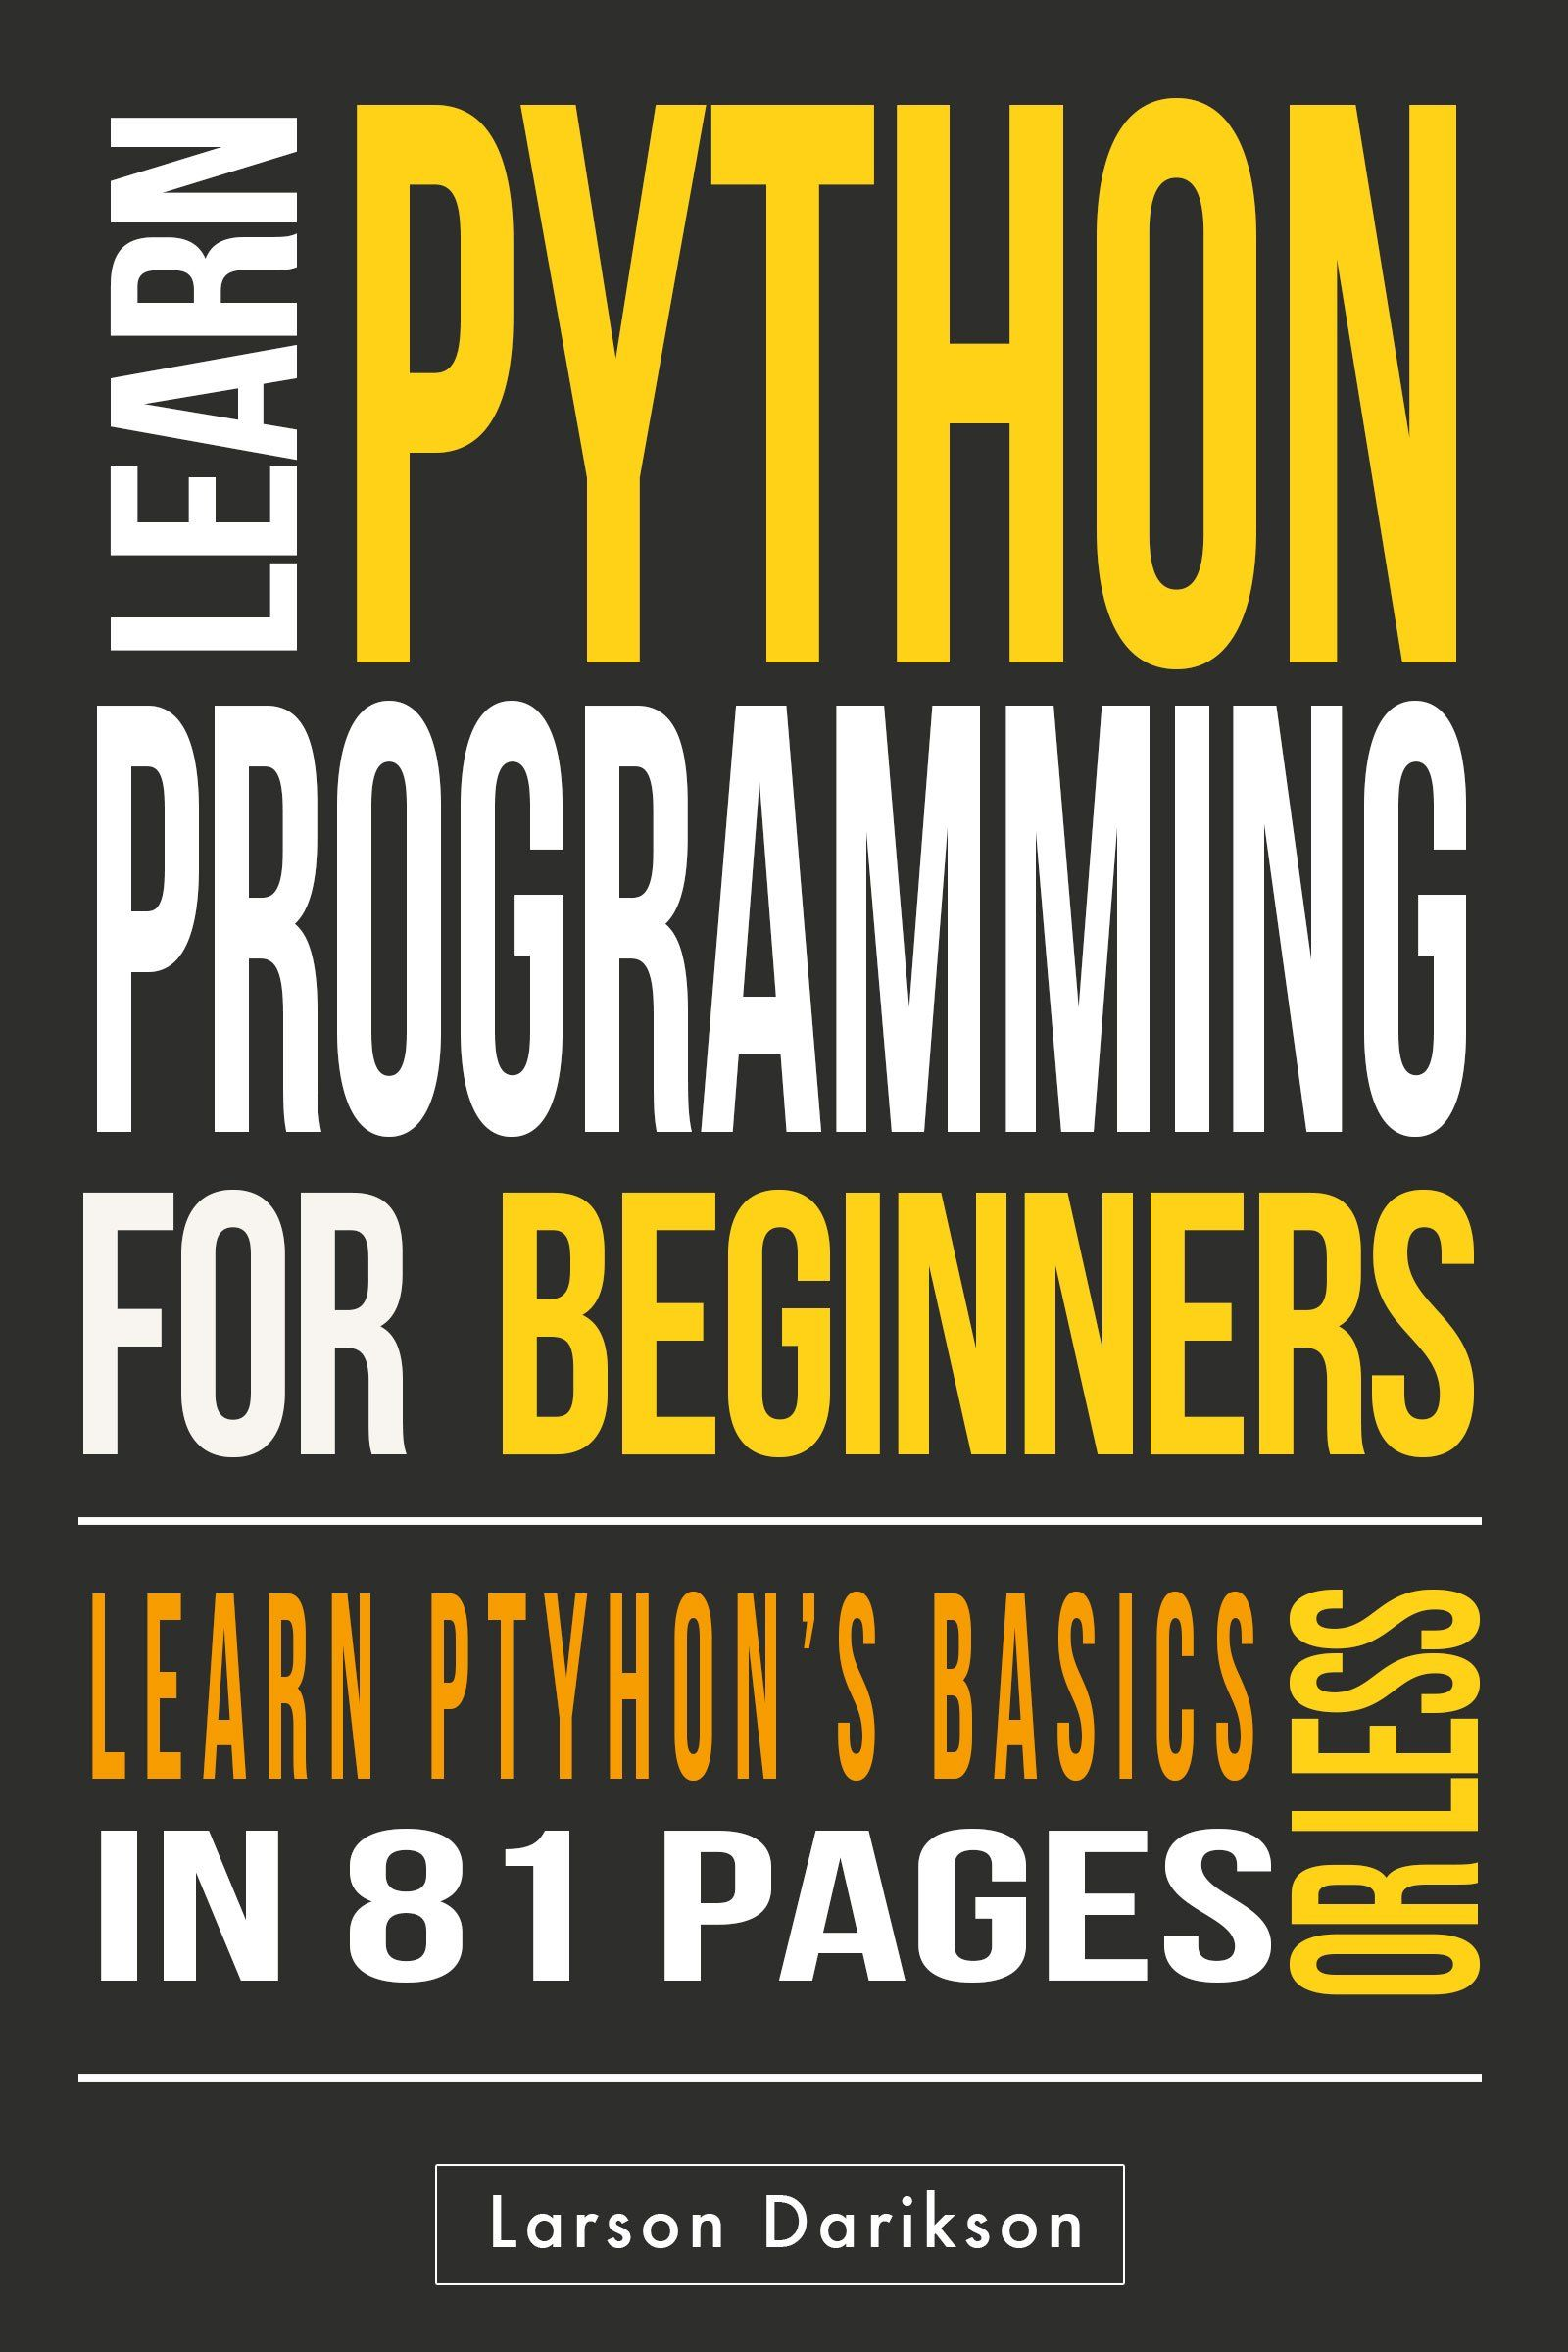 Best Python Resources - Full Stack Python